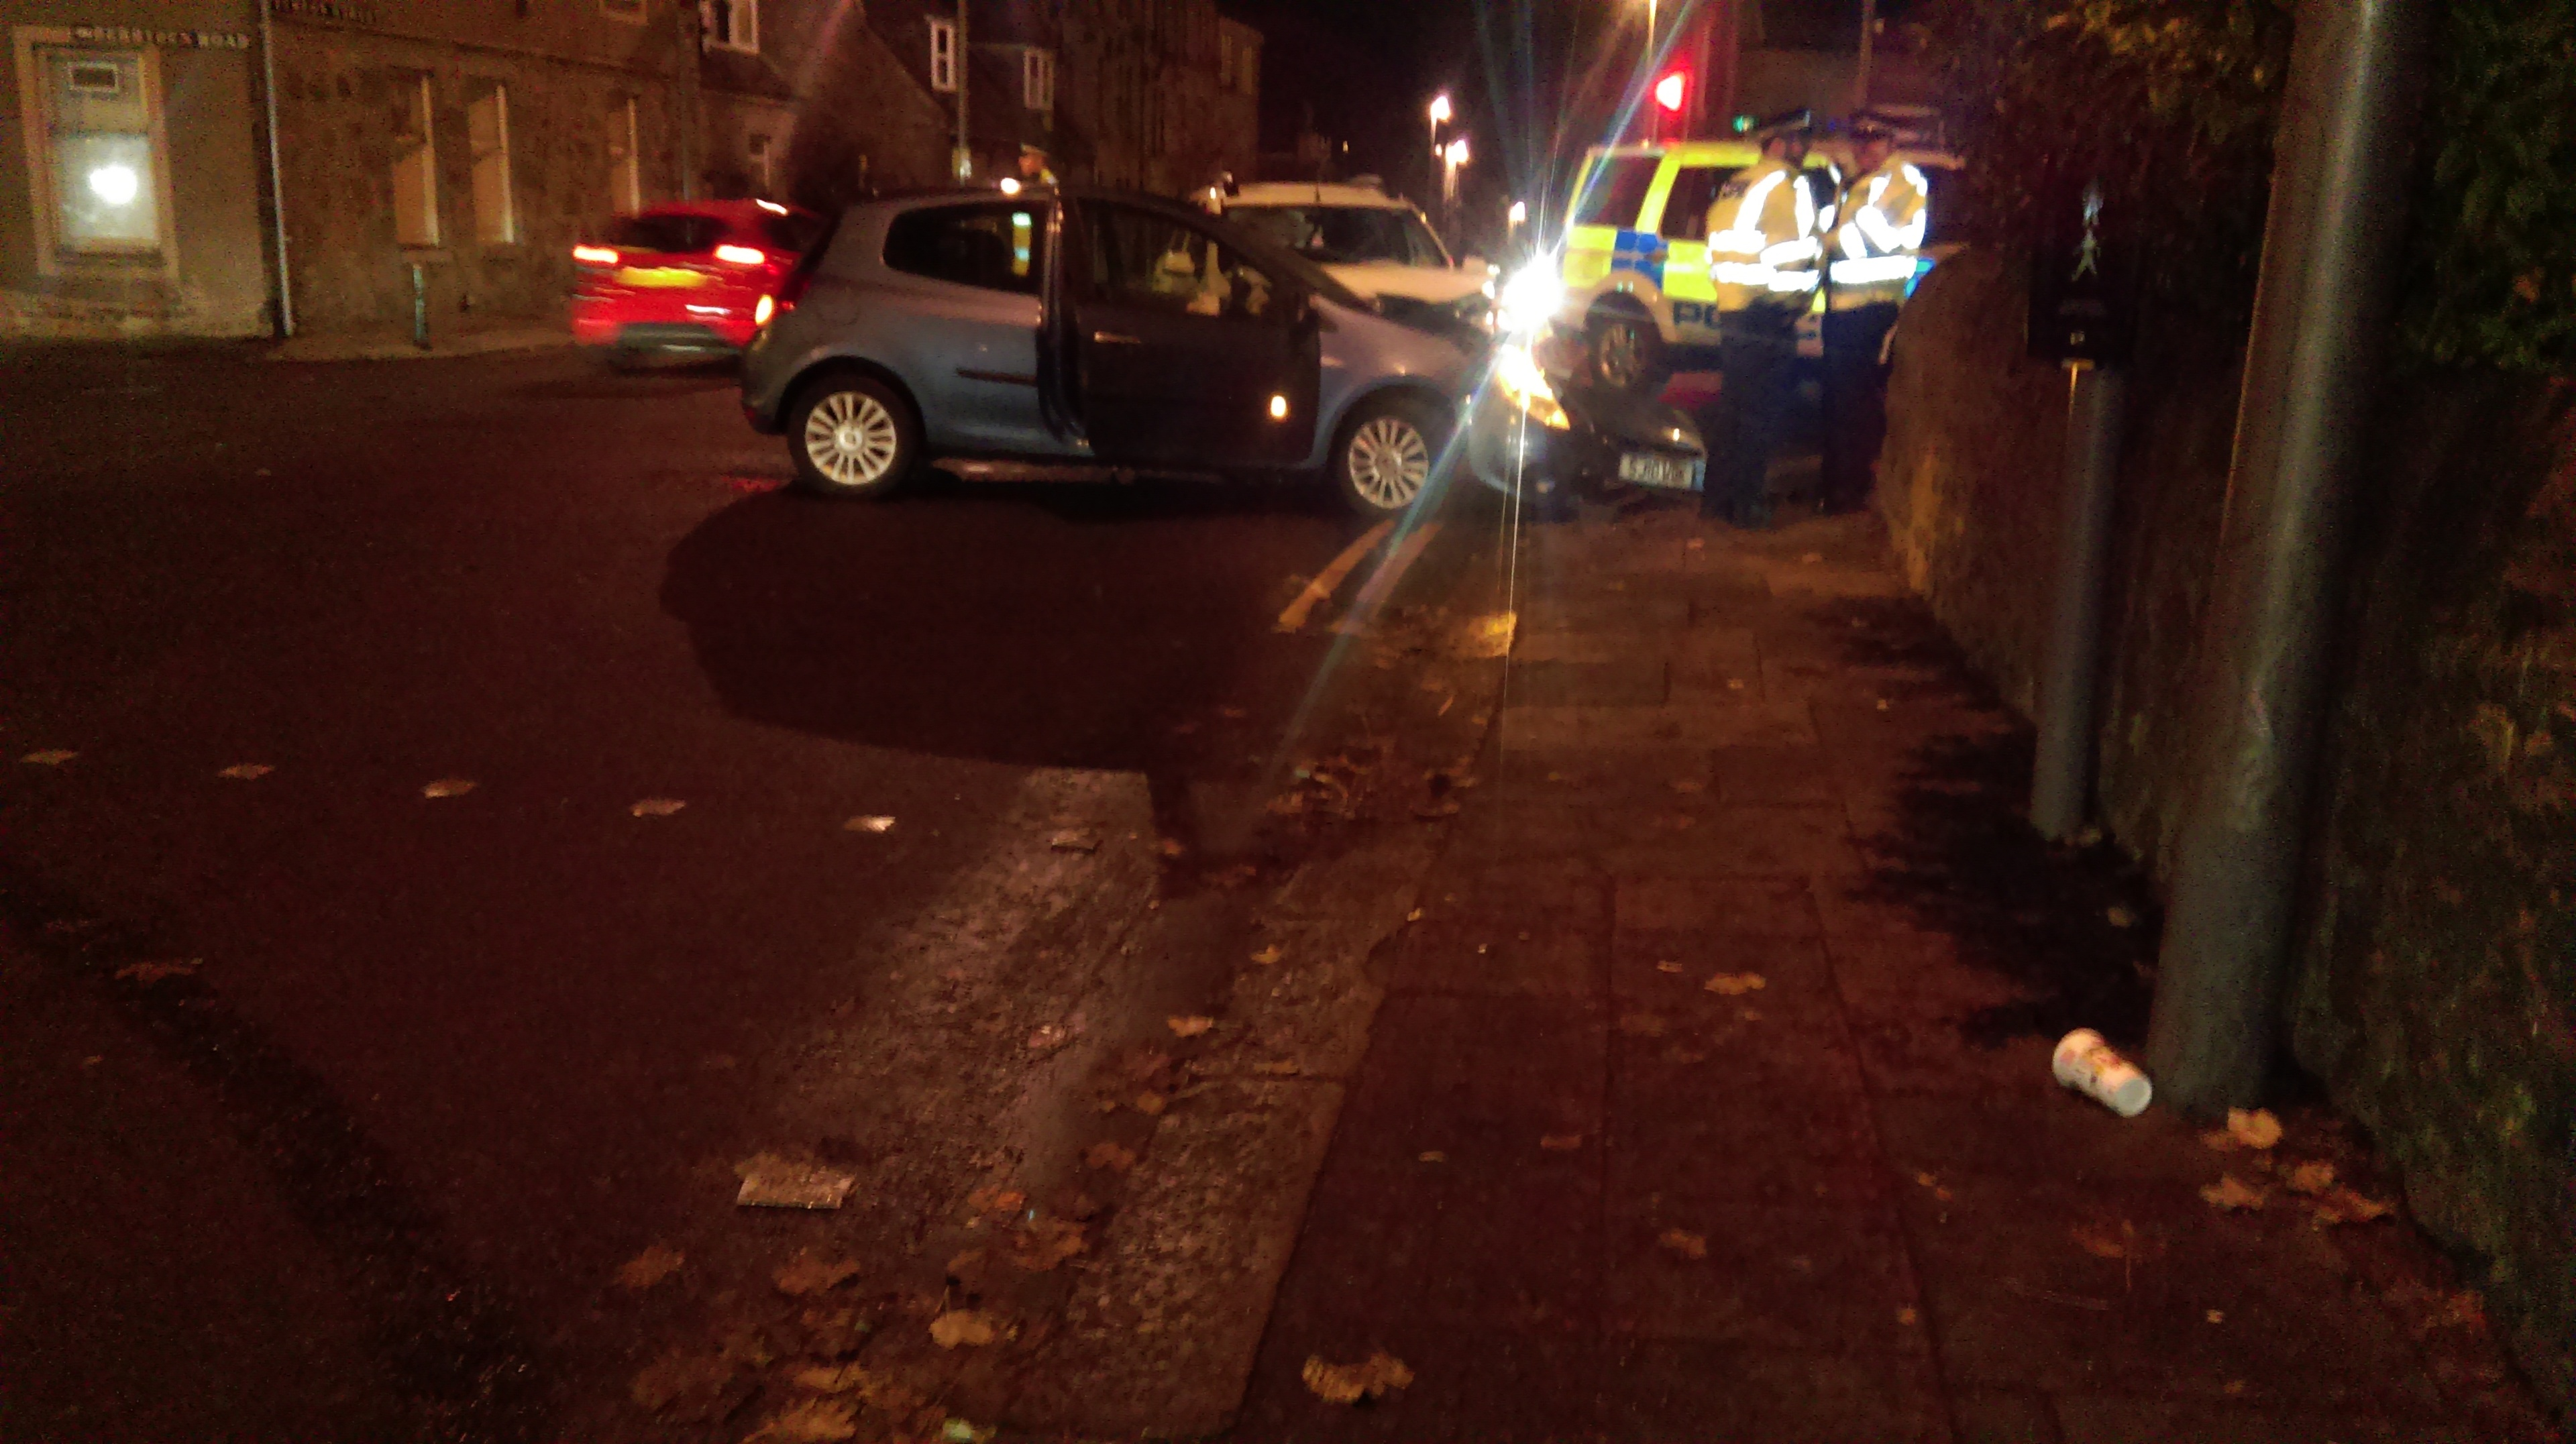 Police at the scene of the crash at Berryden in Aberdeen